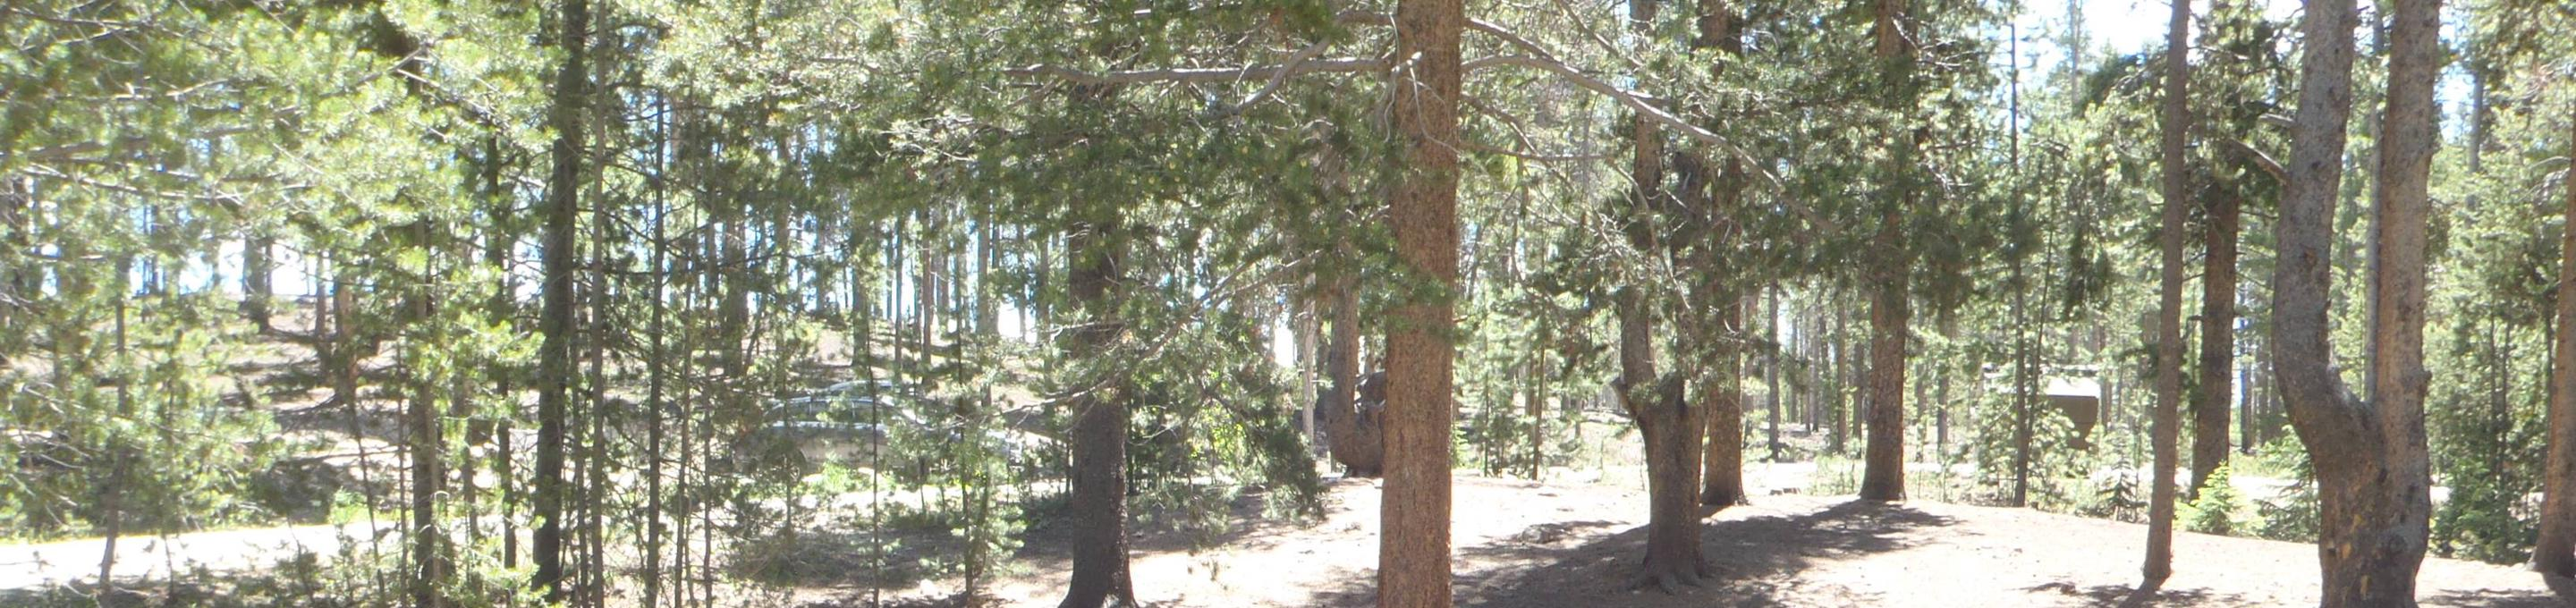 Molly Brown Campground, site 2